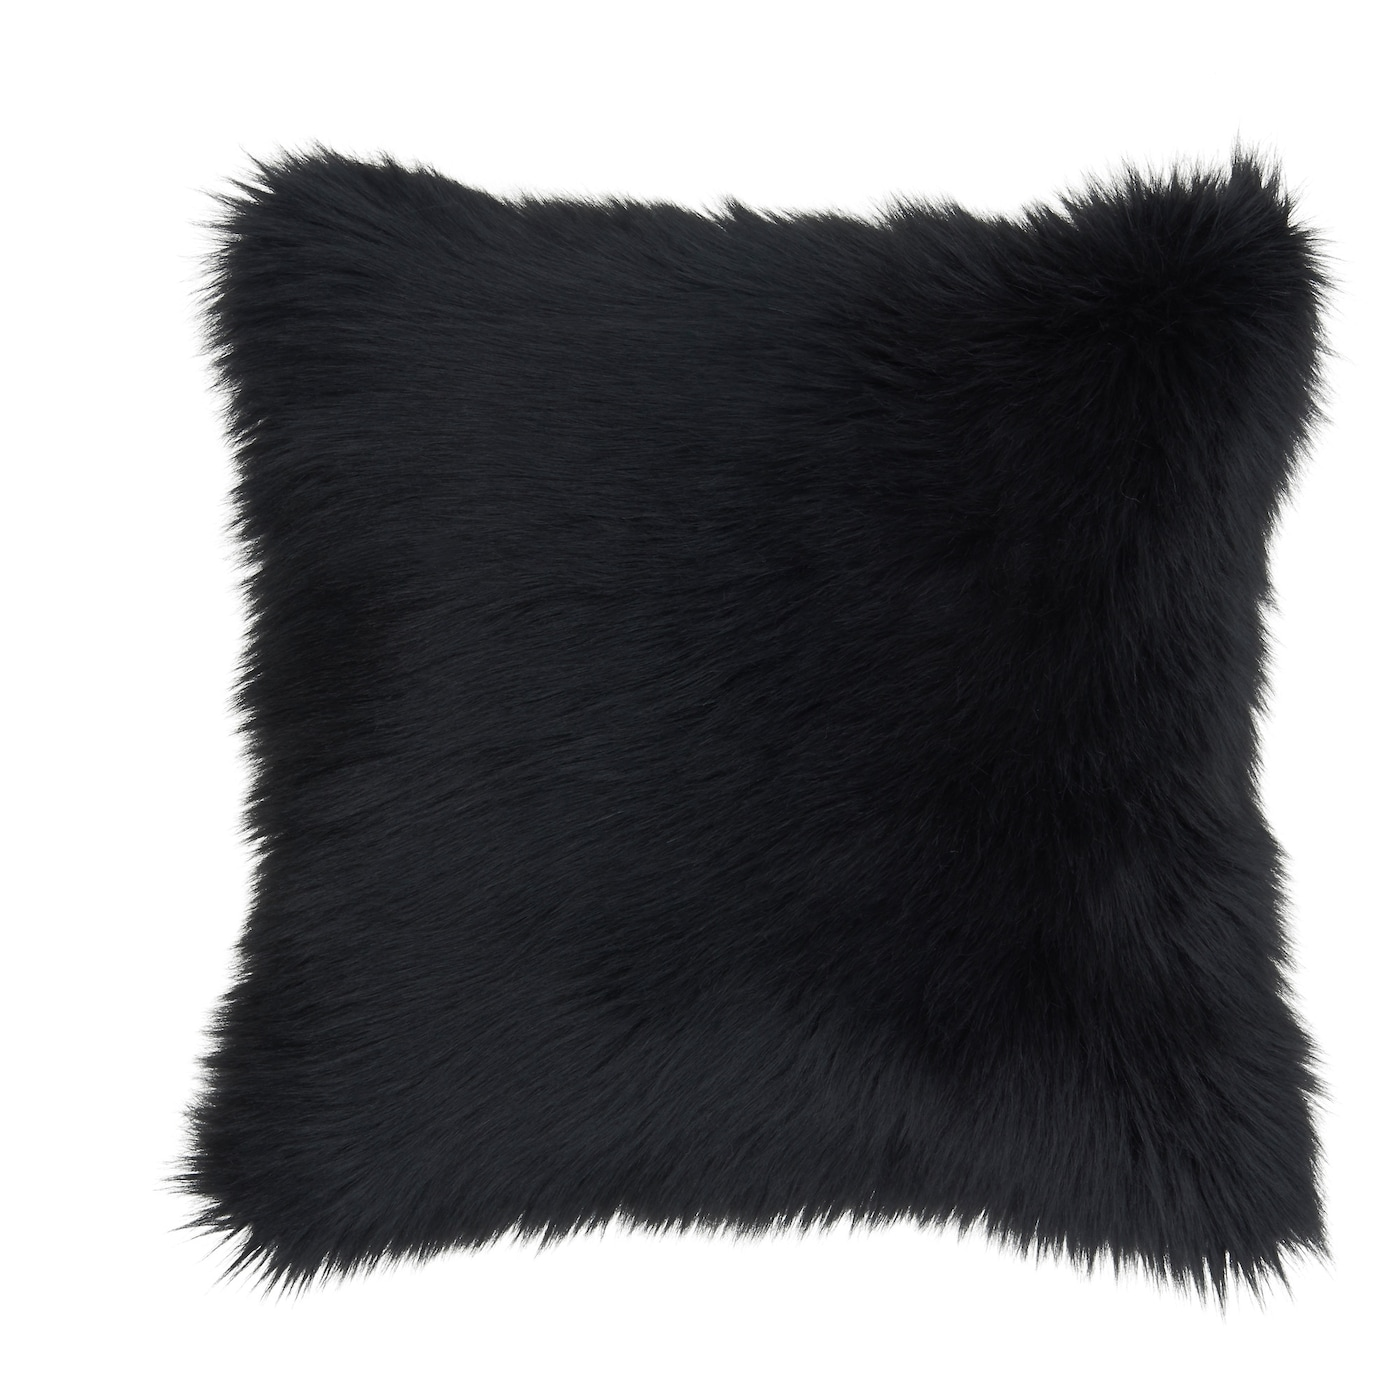 Gullviva cushion cover black faux fur 50x50 cm ikea for Housses de coussin 60x60